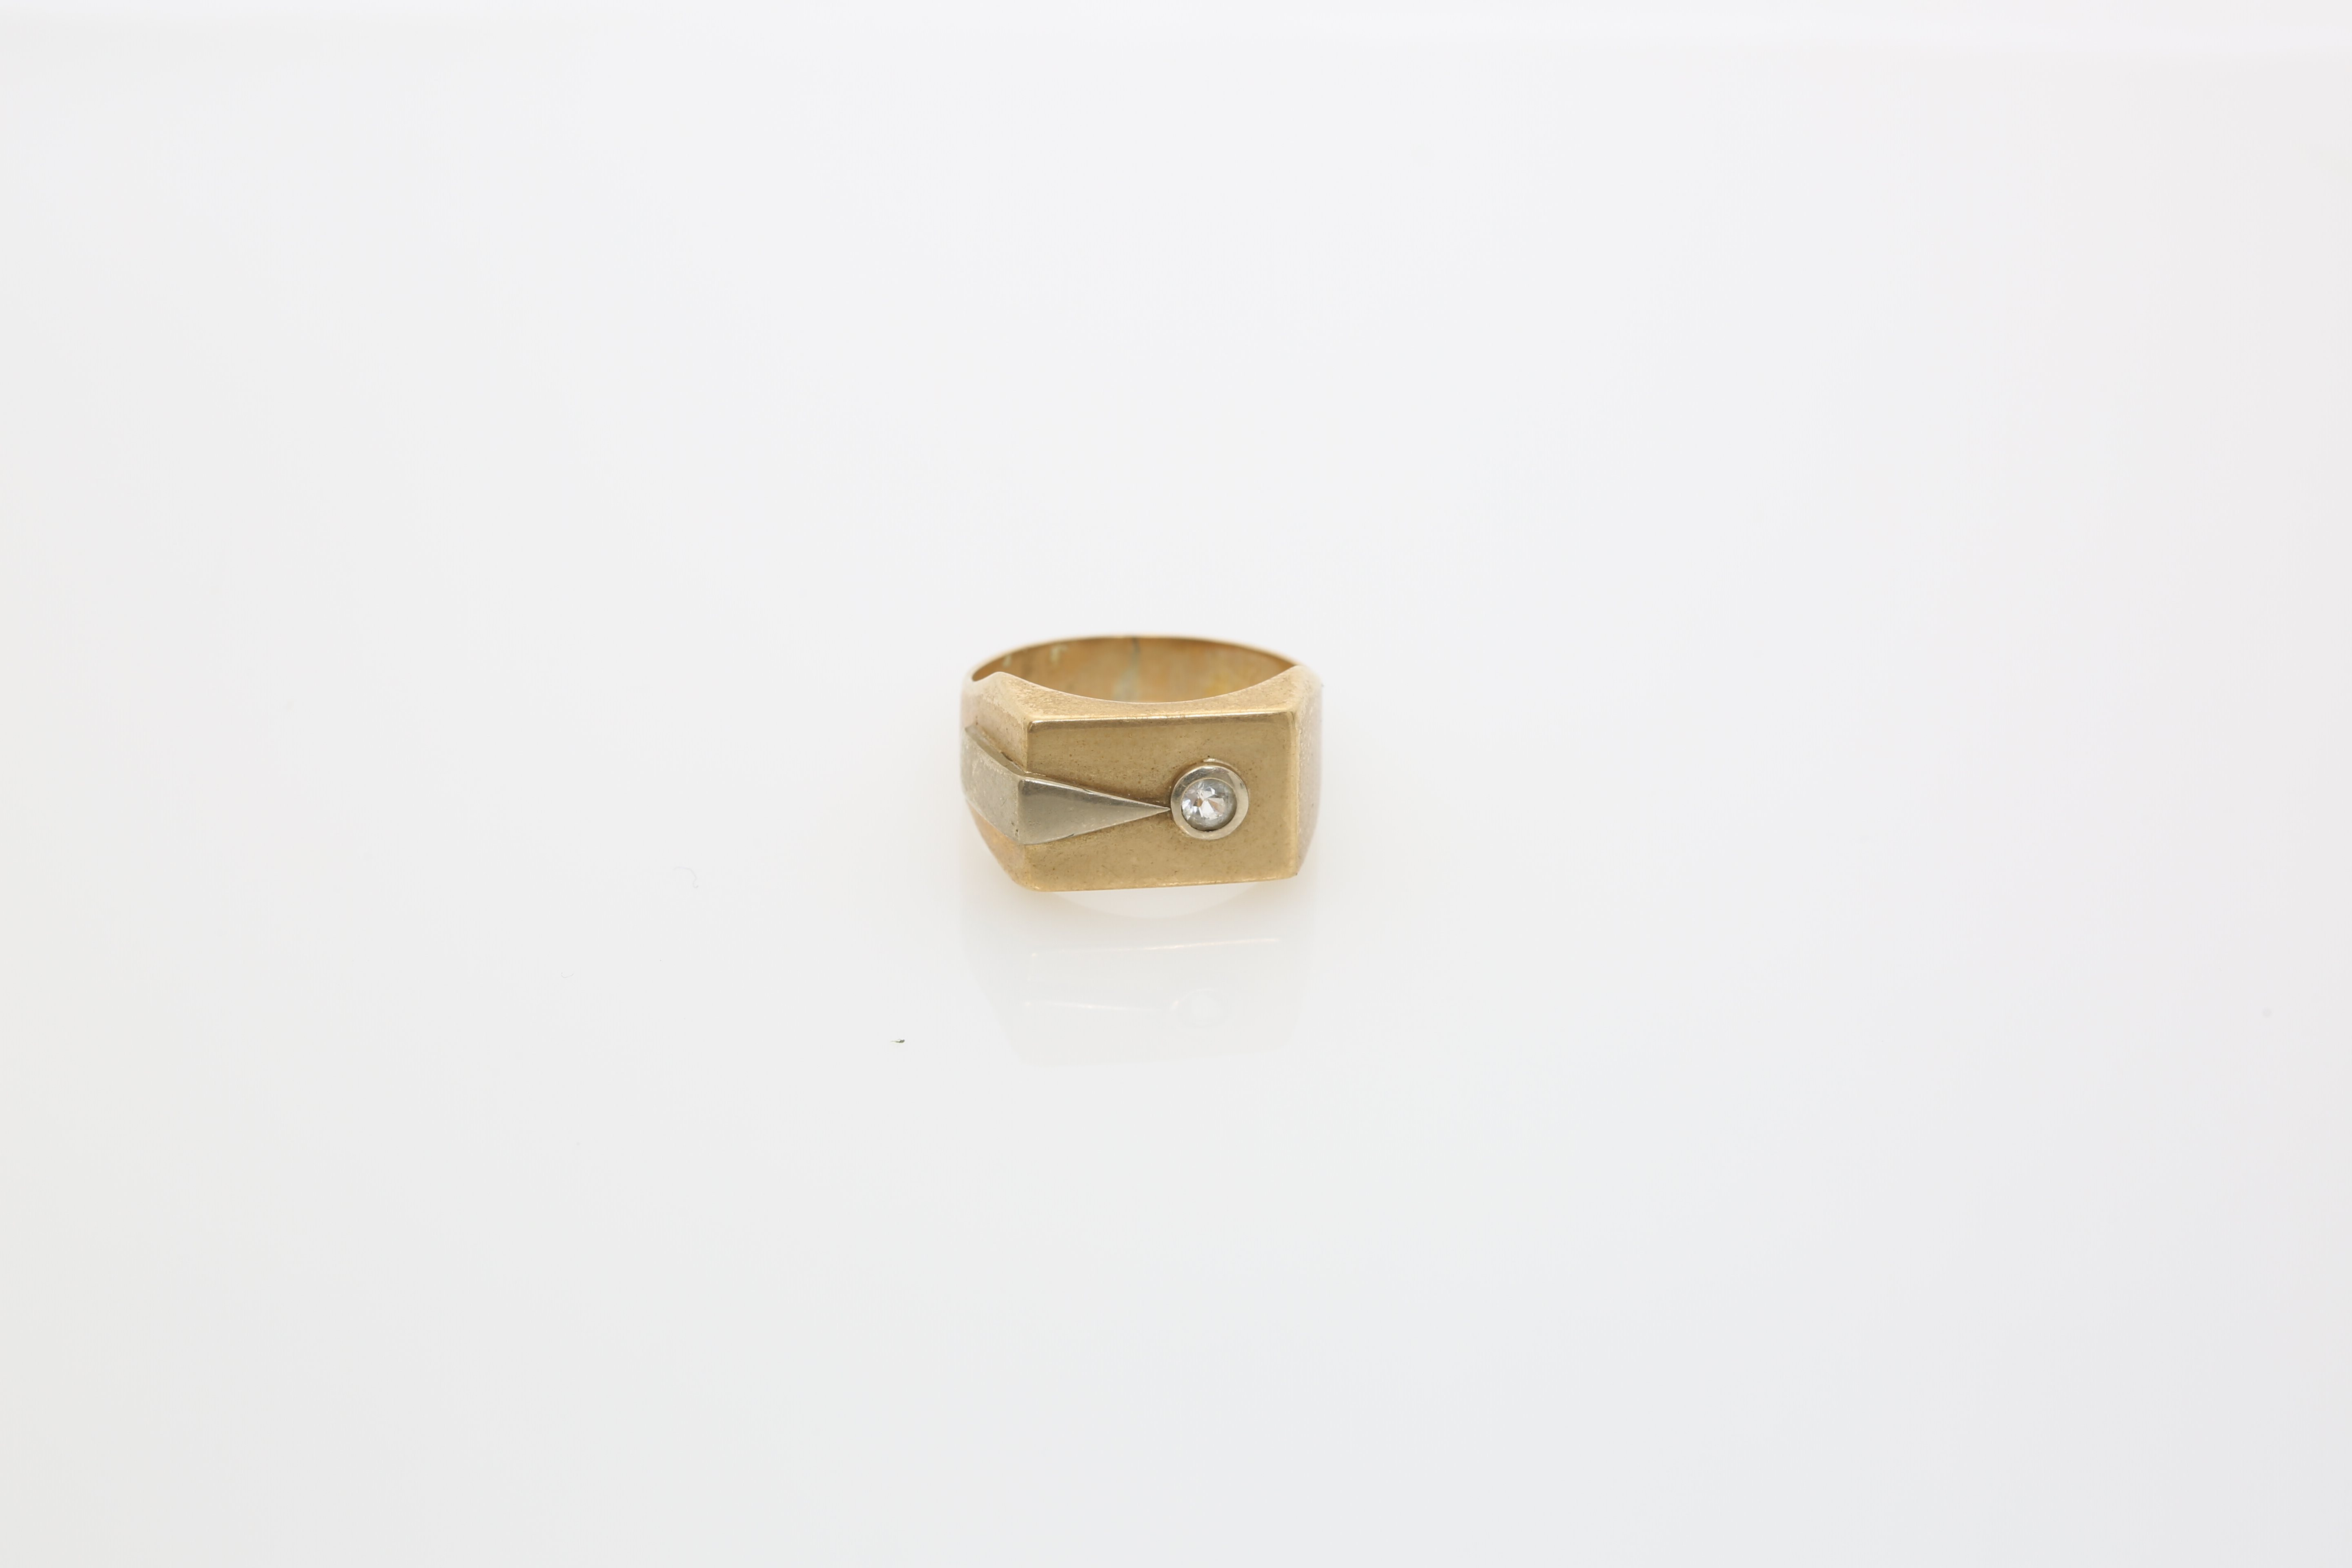 A Gentleman's gold ring. Approx: 4 gr. - Image 2 of 2